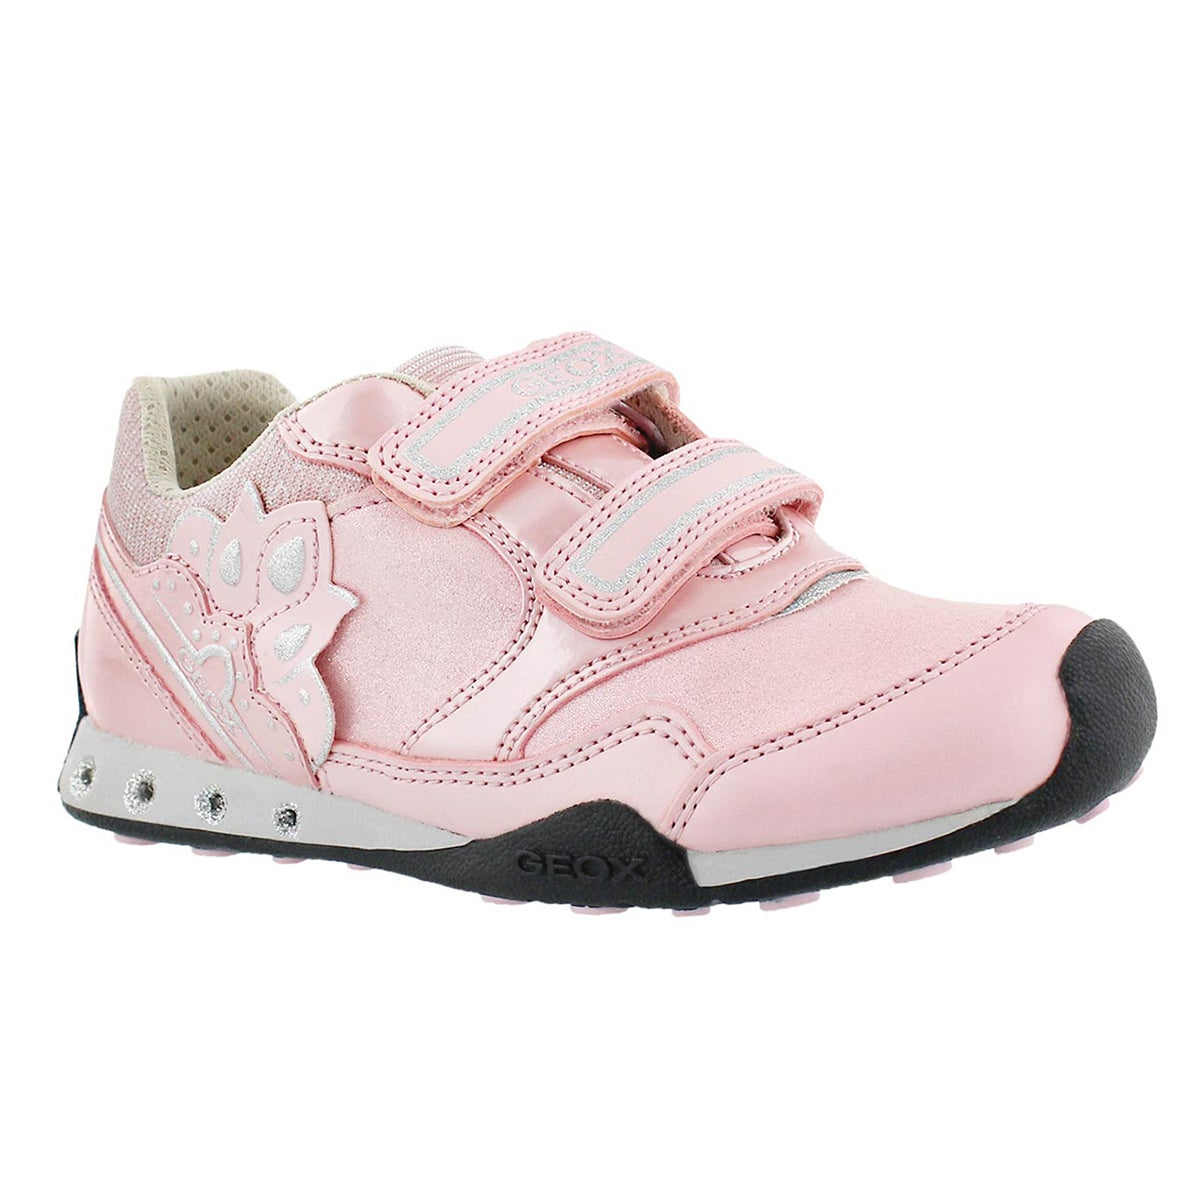 Girls' NEW JOCKER pink 2-strap sneakers